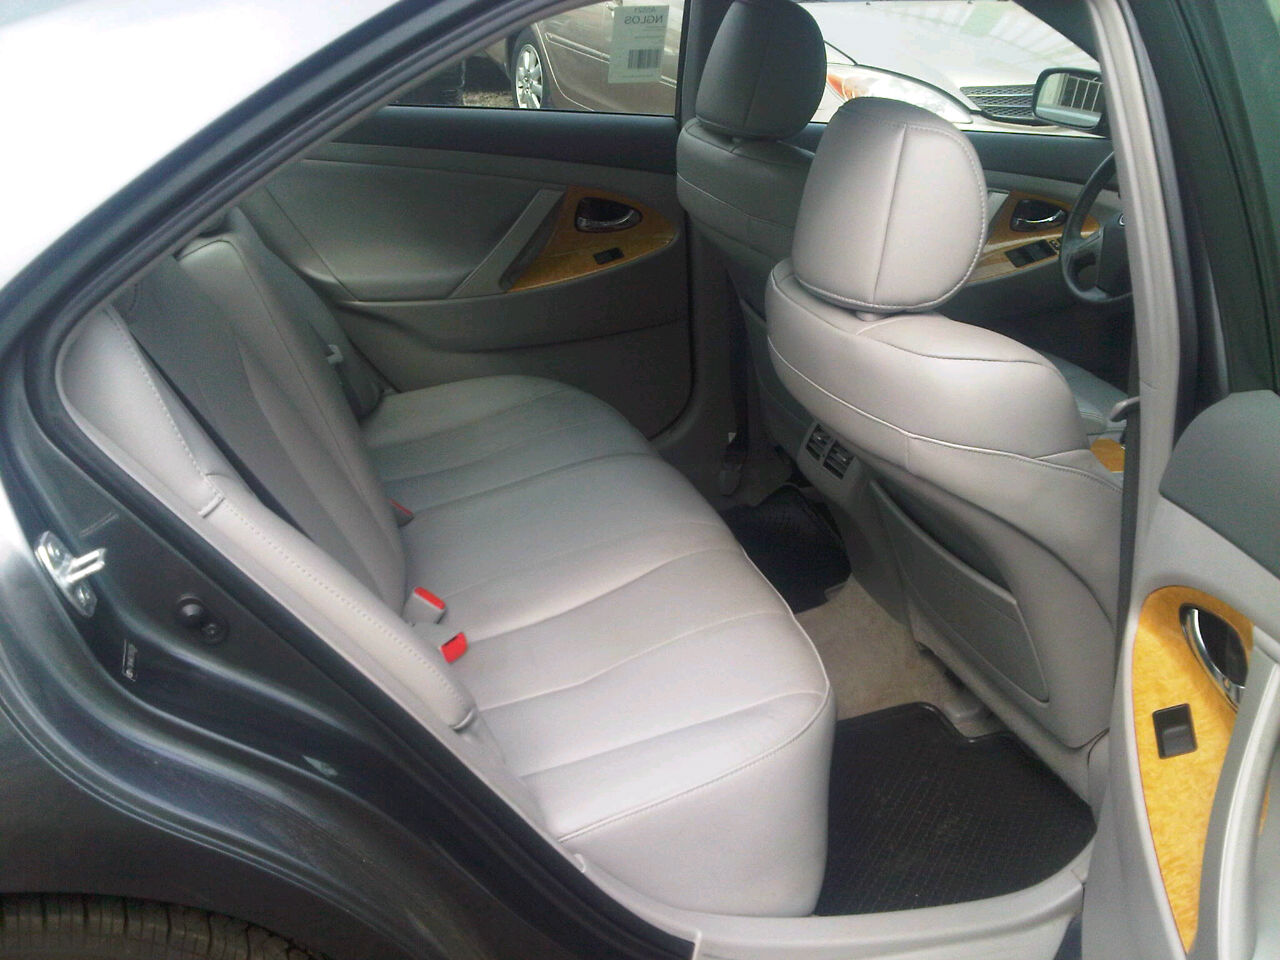 brand new toyota camry for sale foto grand veloz tokunbo 2007 contacts